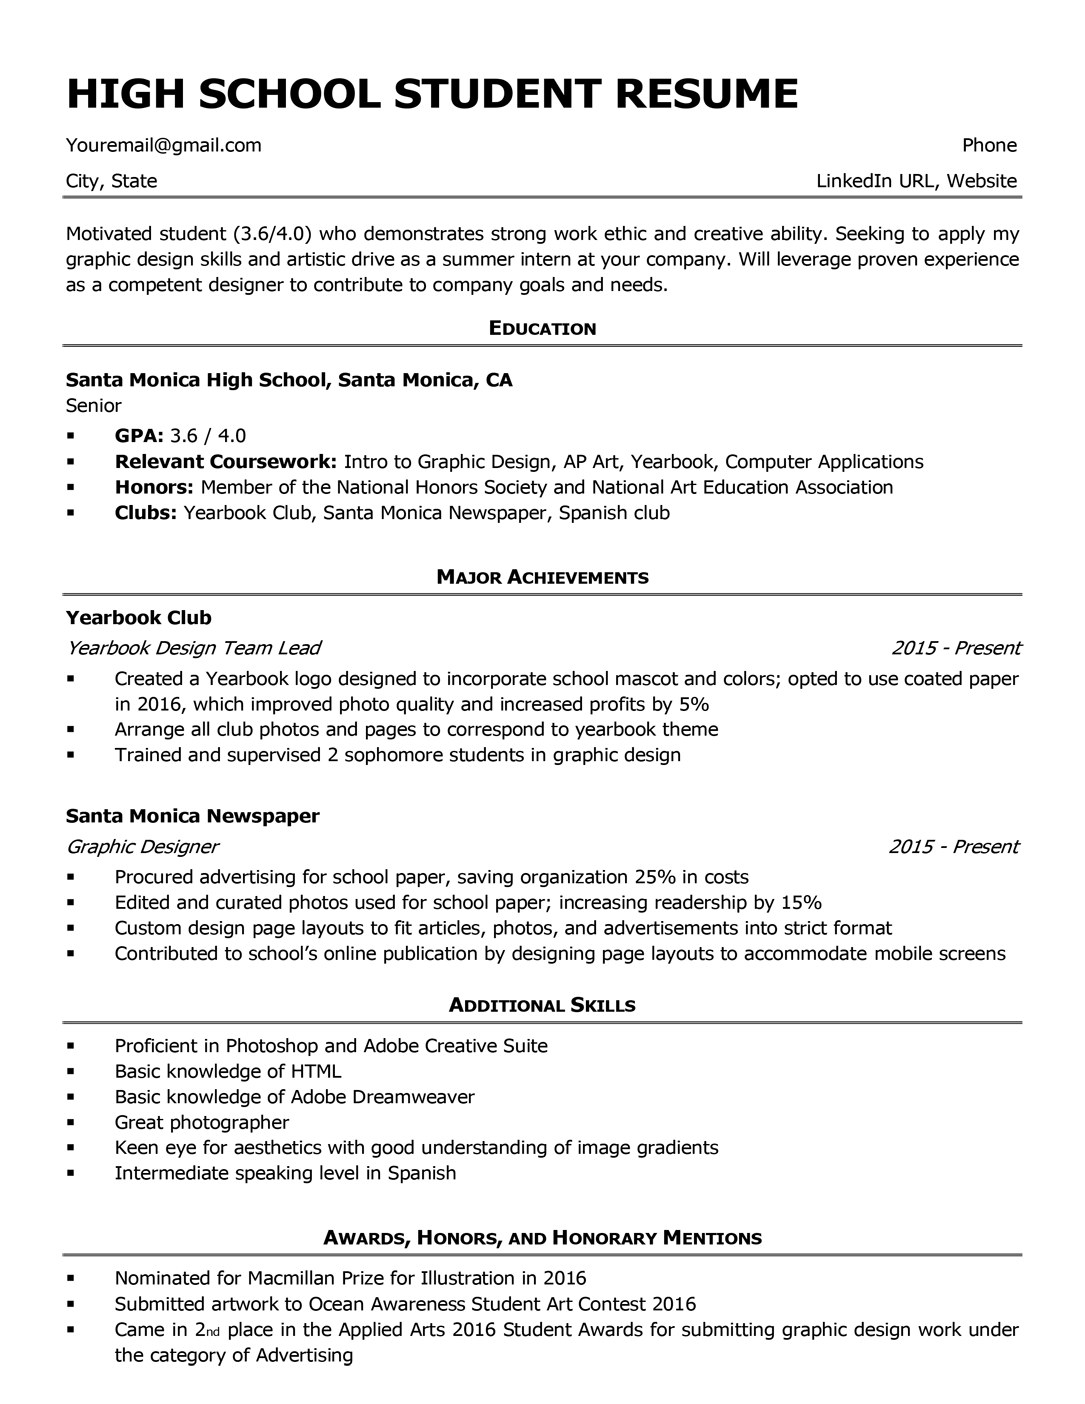 High school student resume sample